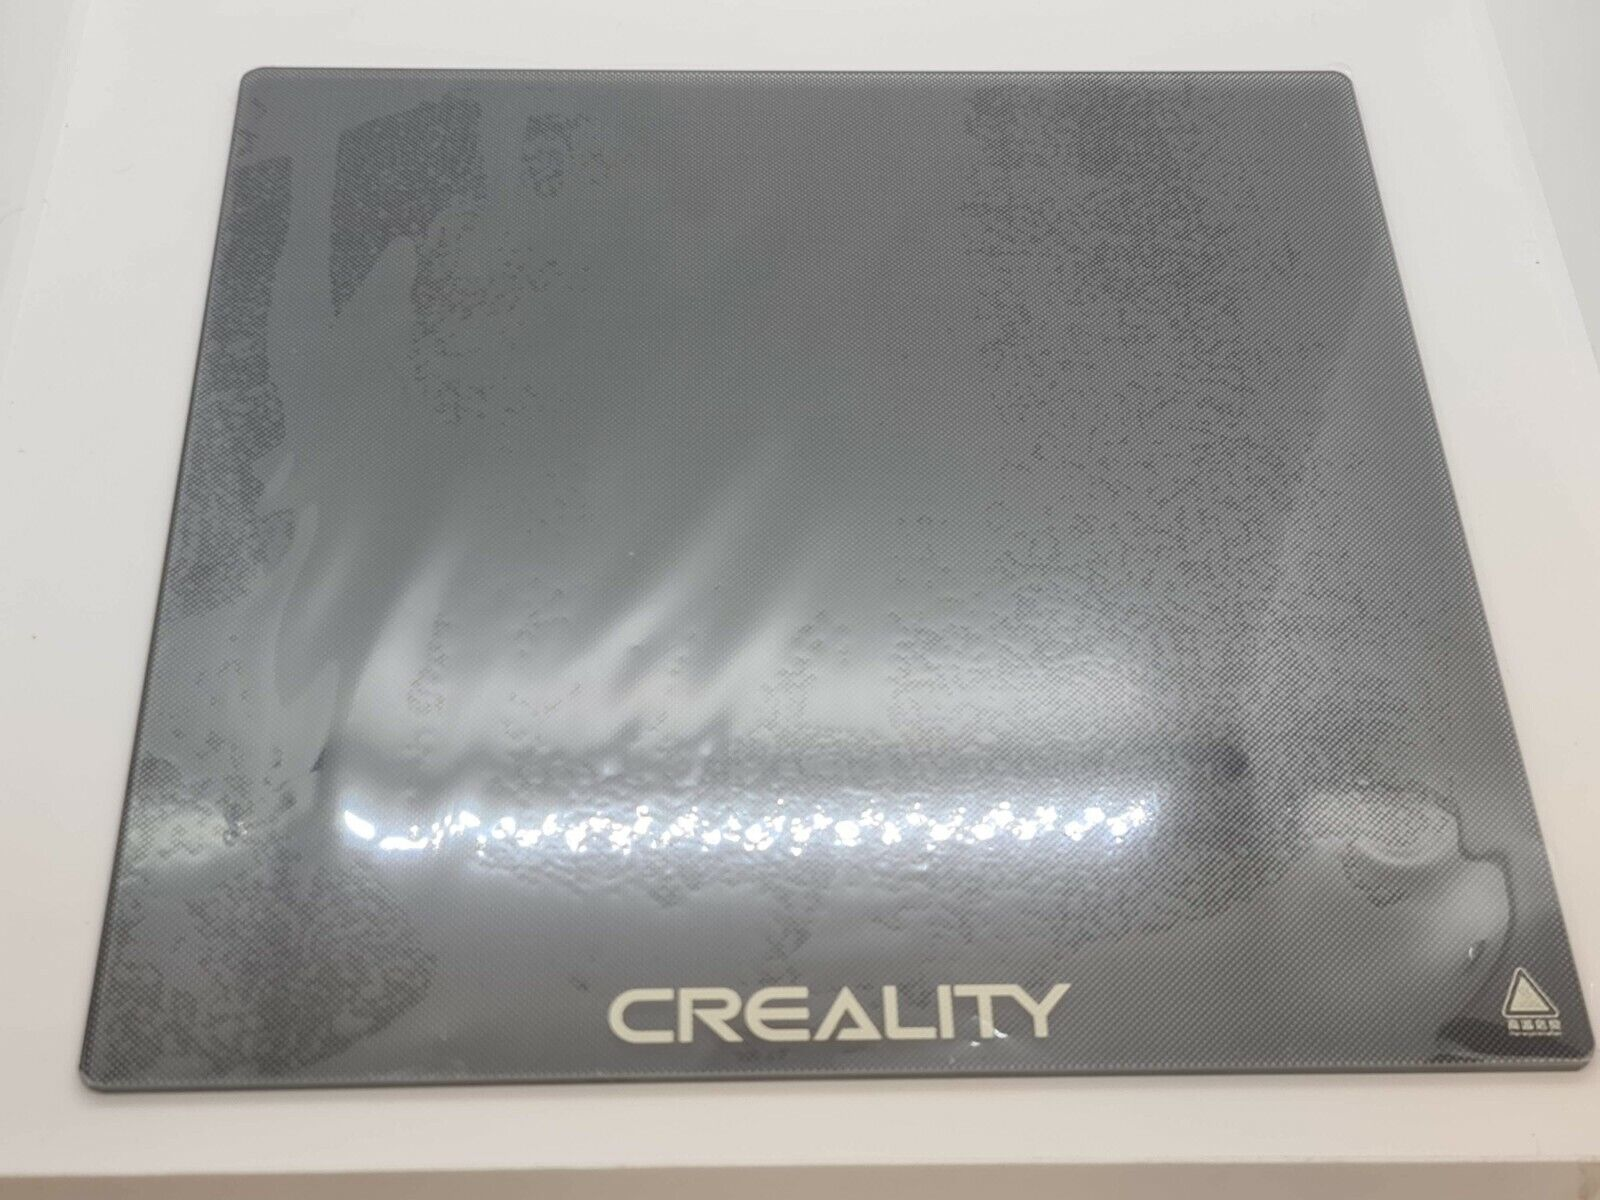 Creality CR-10 S-Pro / CR-10 V2 Glass Bed Removable Print Plate 310X310mm